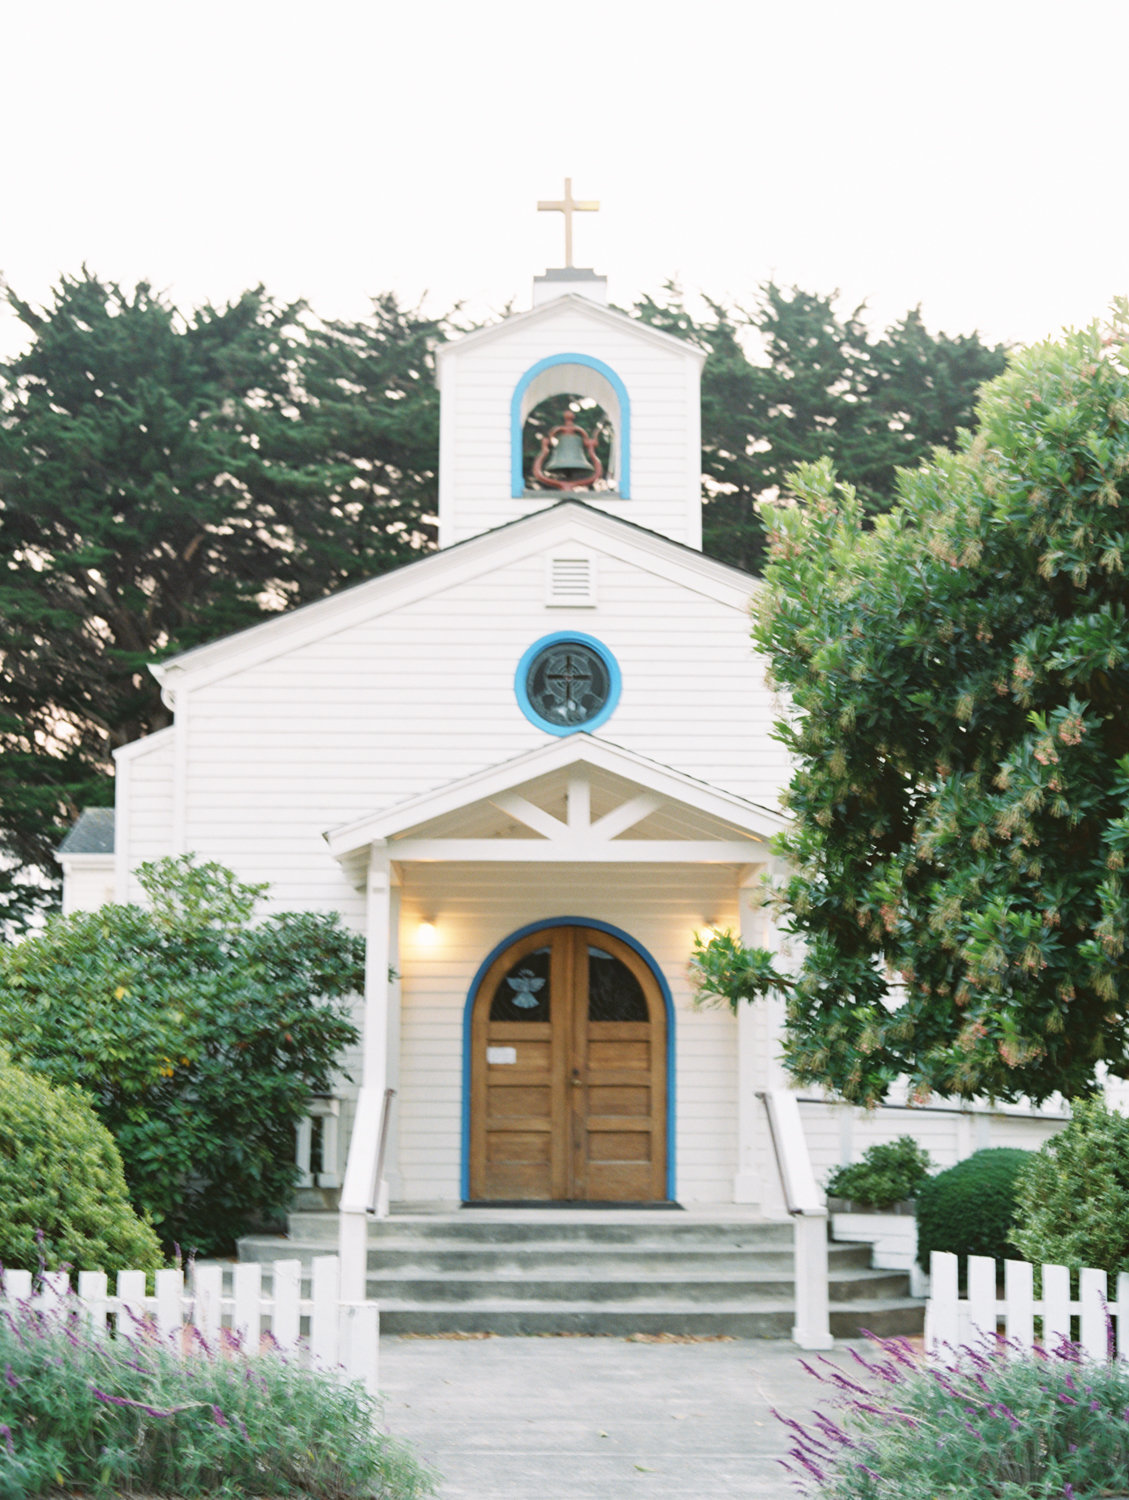 destination_california_mendocino_fine_art_wedding_photographer_bethany_erin-22